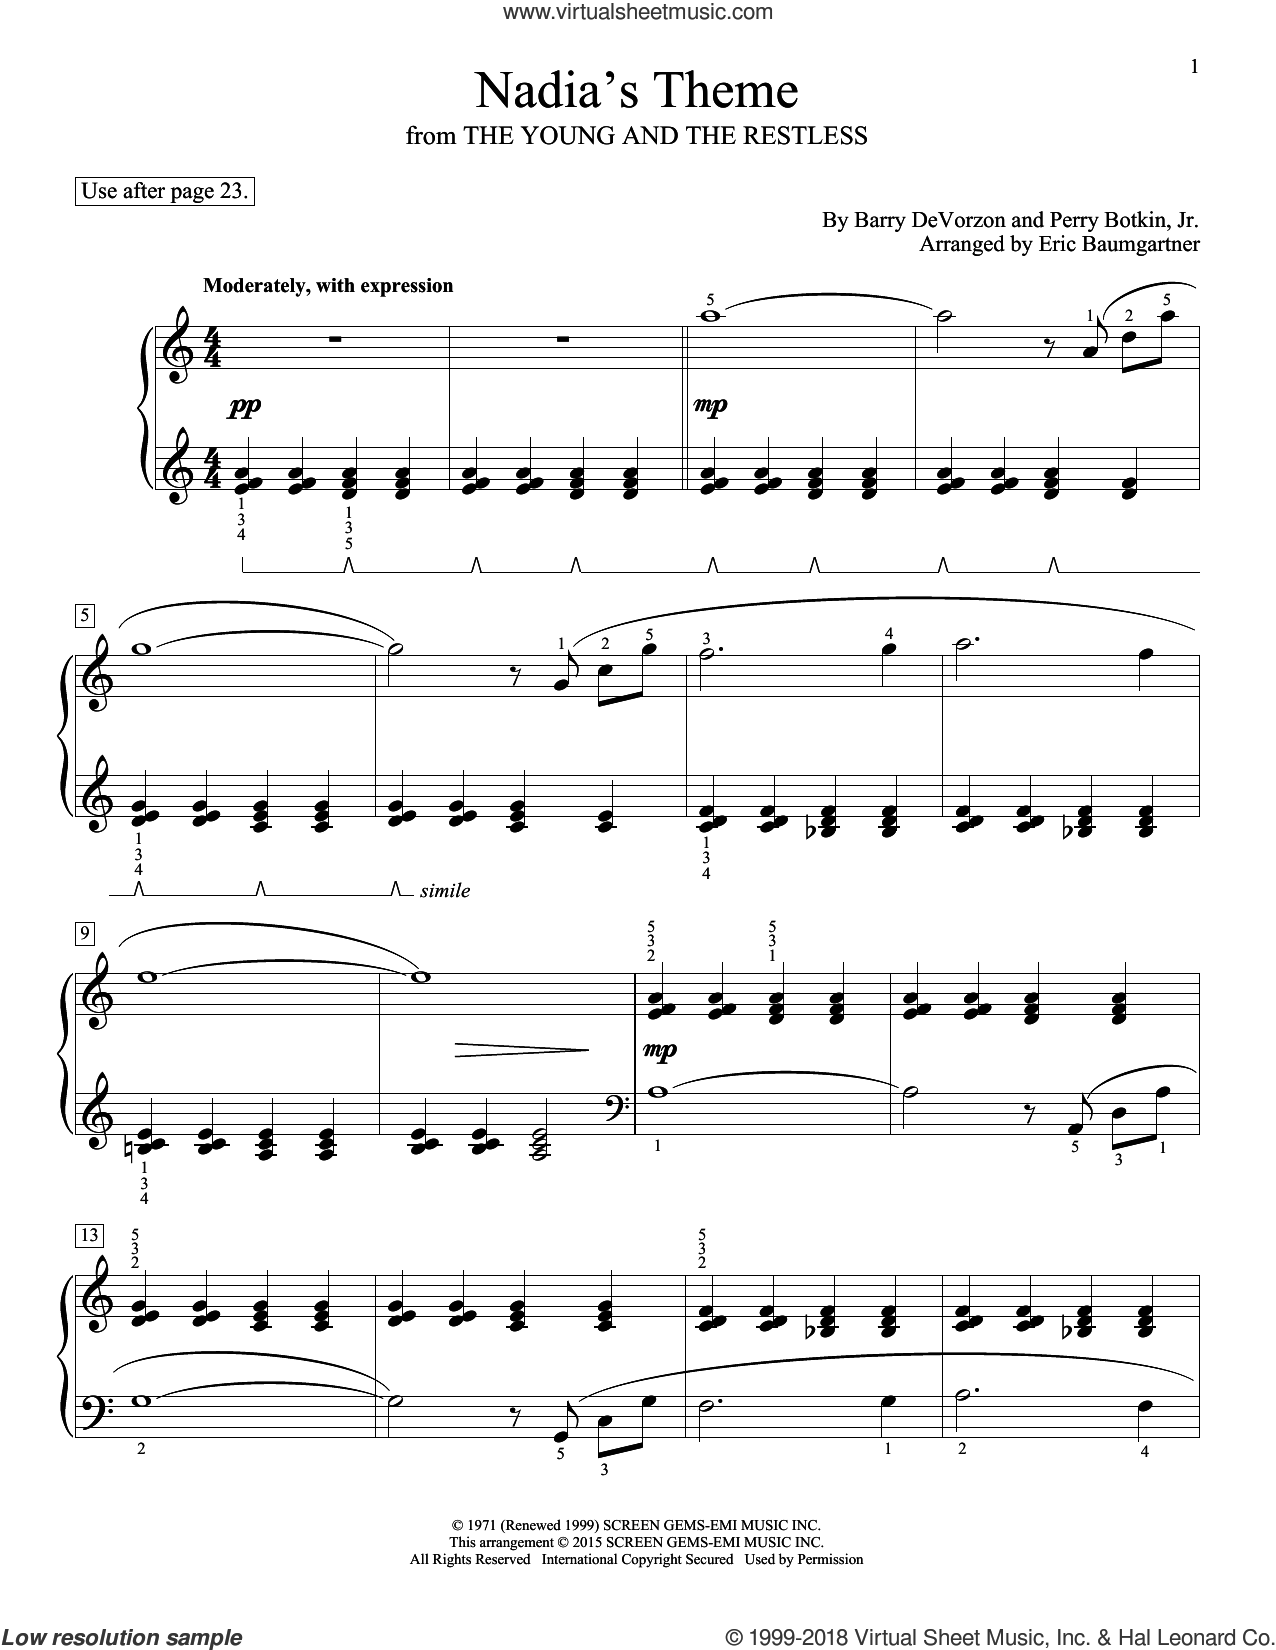 Nadia's Theme sheet music for piano solo (elementary) by John Thompson, Barry DeVorzon & Perry Botkin, Jr., Eric Baumgartner, Glenda Austin, Barry DeVorzon and Perry Botkin, Jr., beginner piano (elementary)